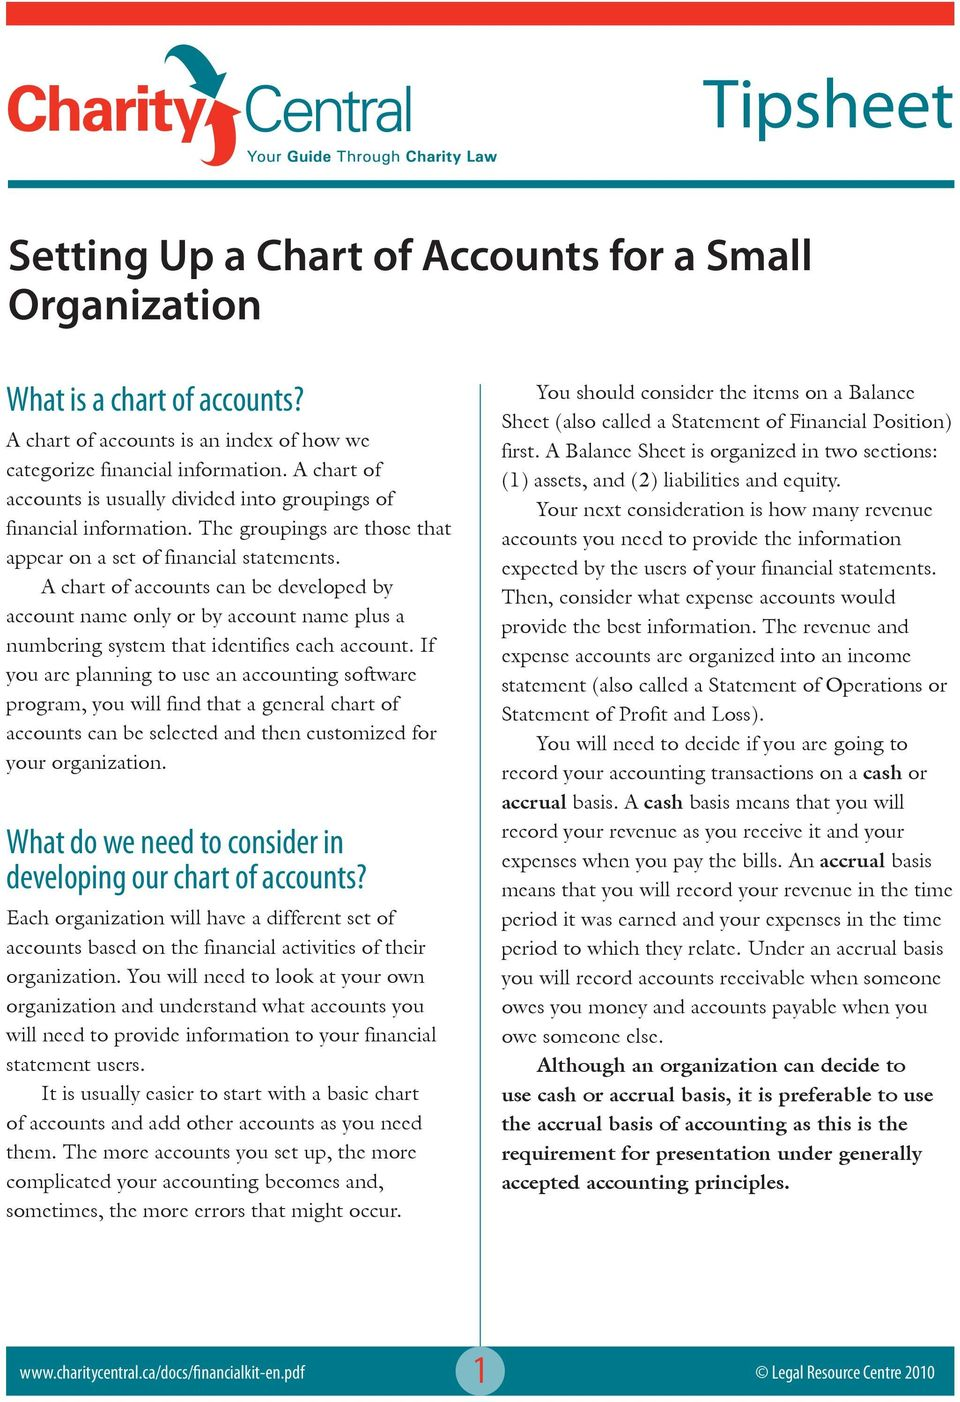 A chart of accounts can be developed by account name only or by account name plus a numbering system that identifies each account.